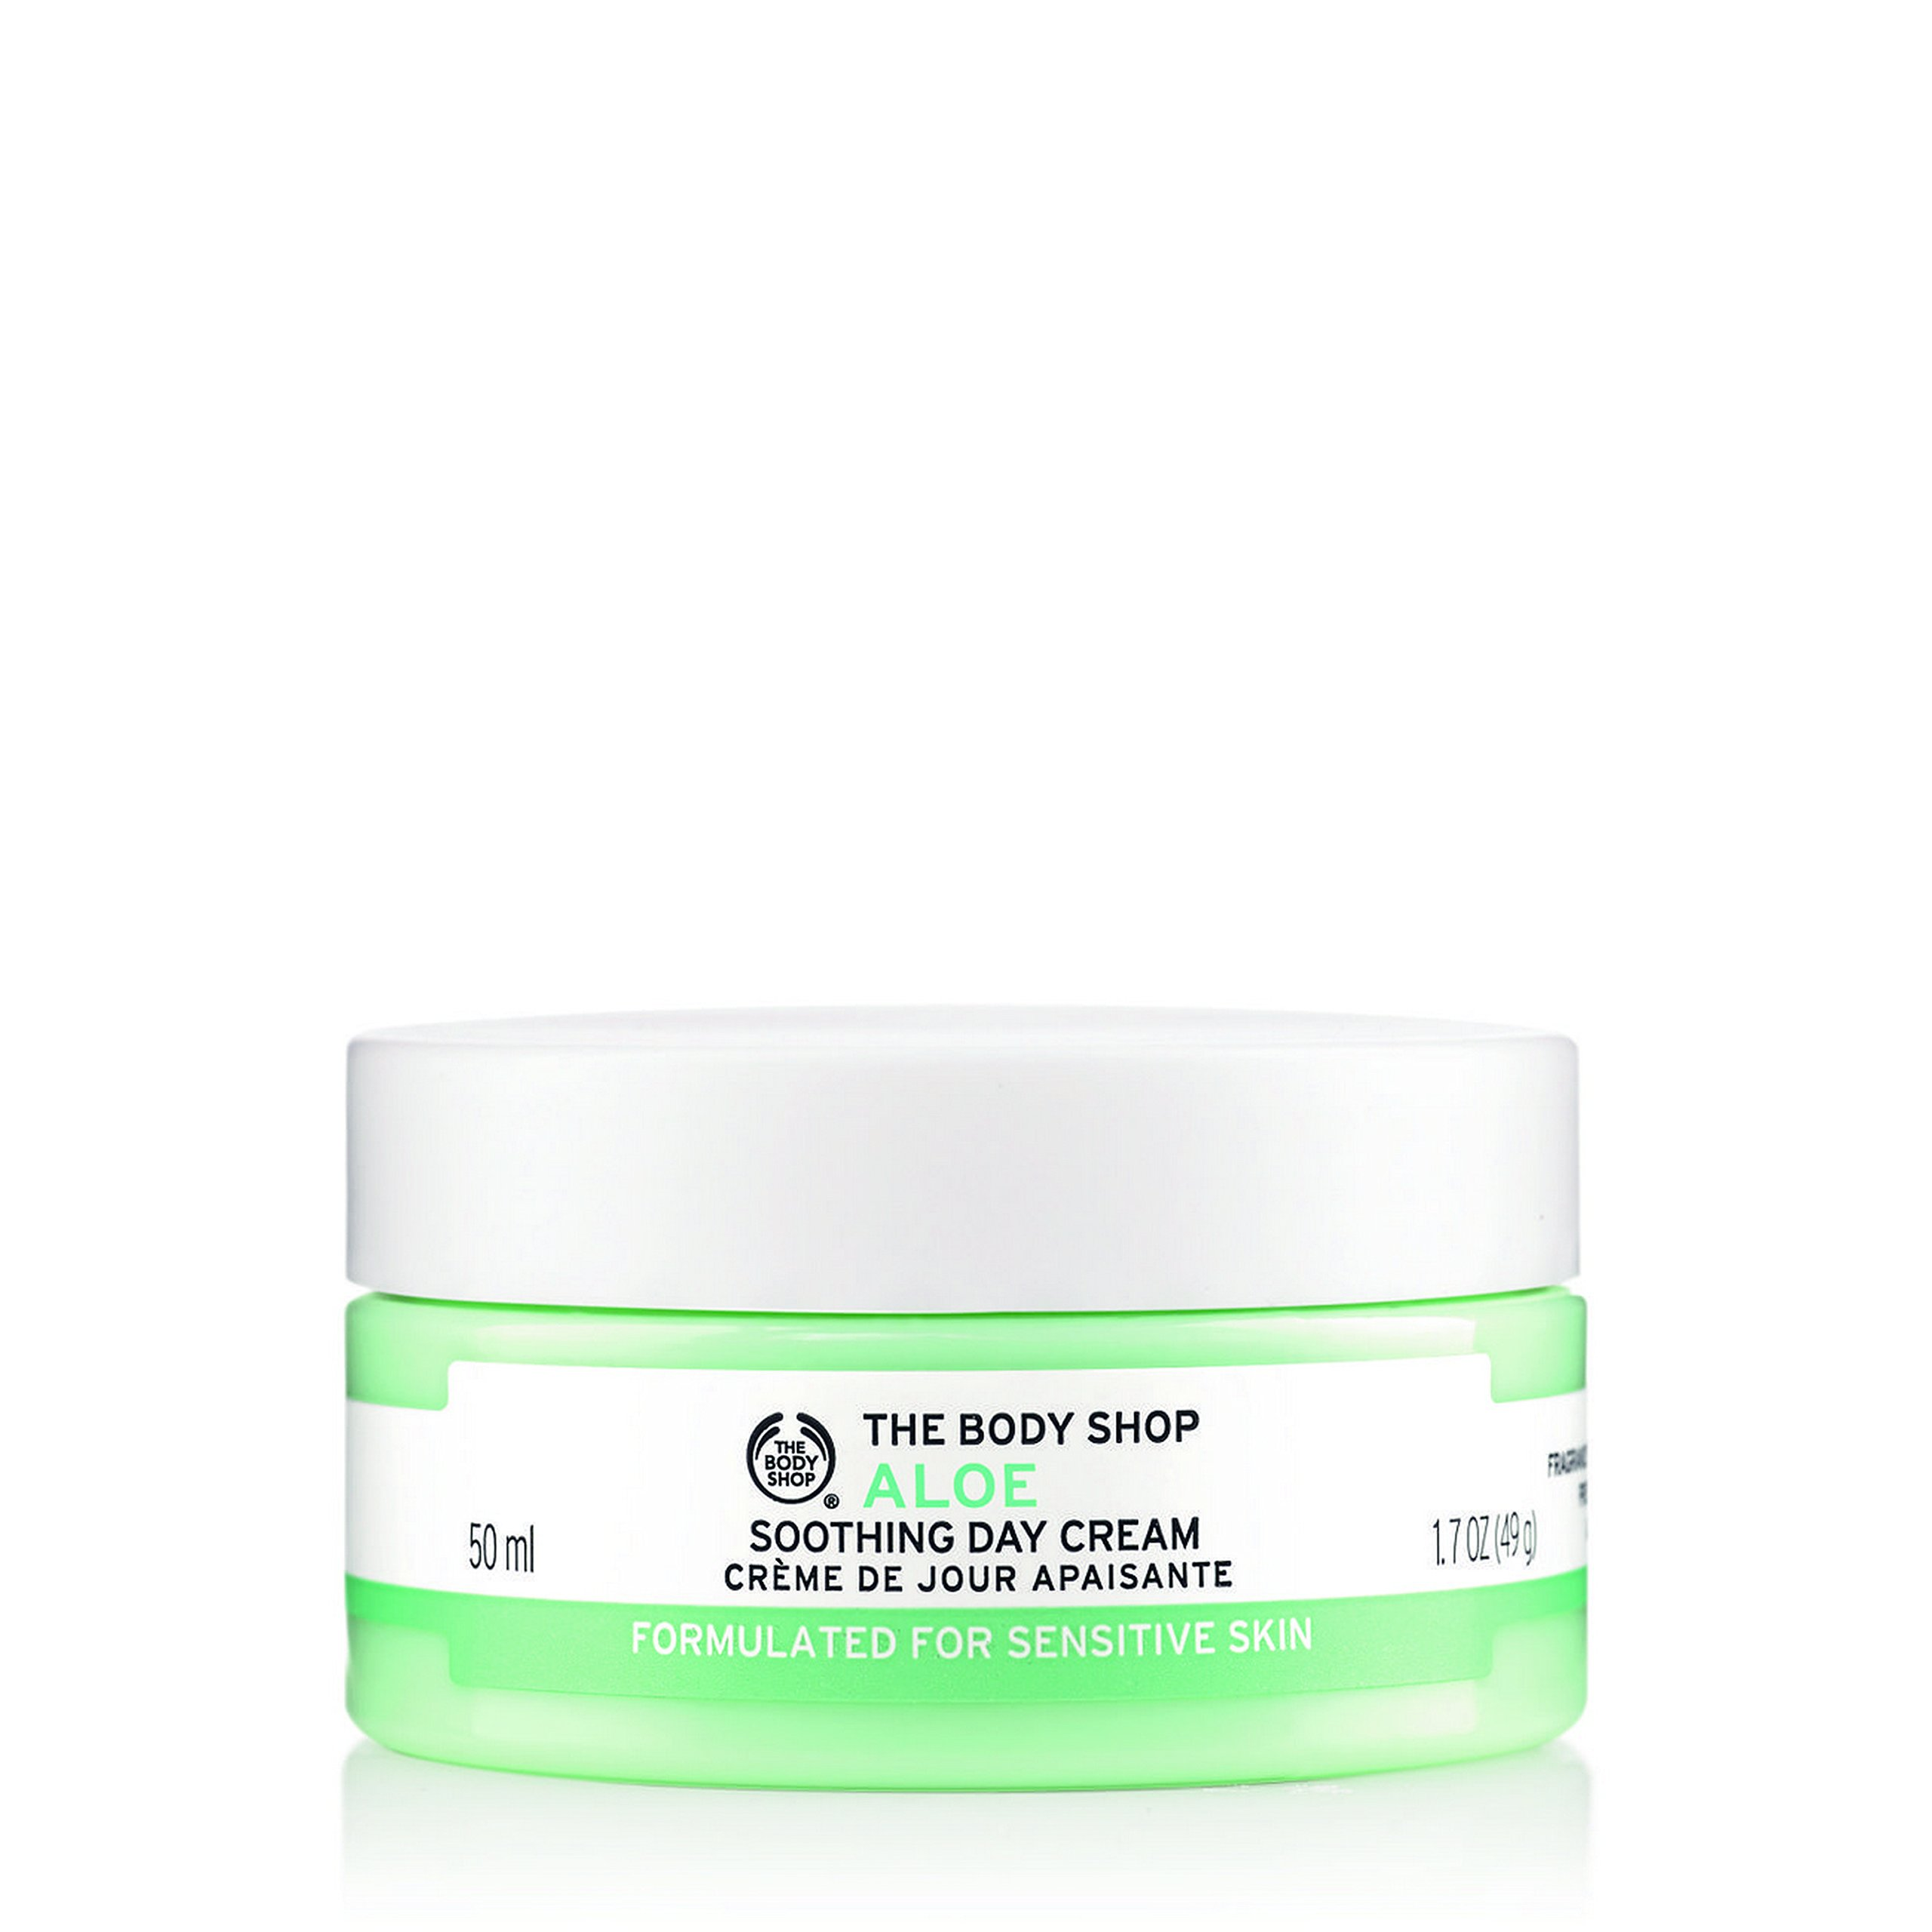 The Body Shop Aloe Soothing Day Cream Regular, 1.7 Ounce (Packaging May Vary)